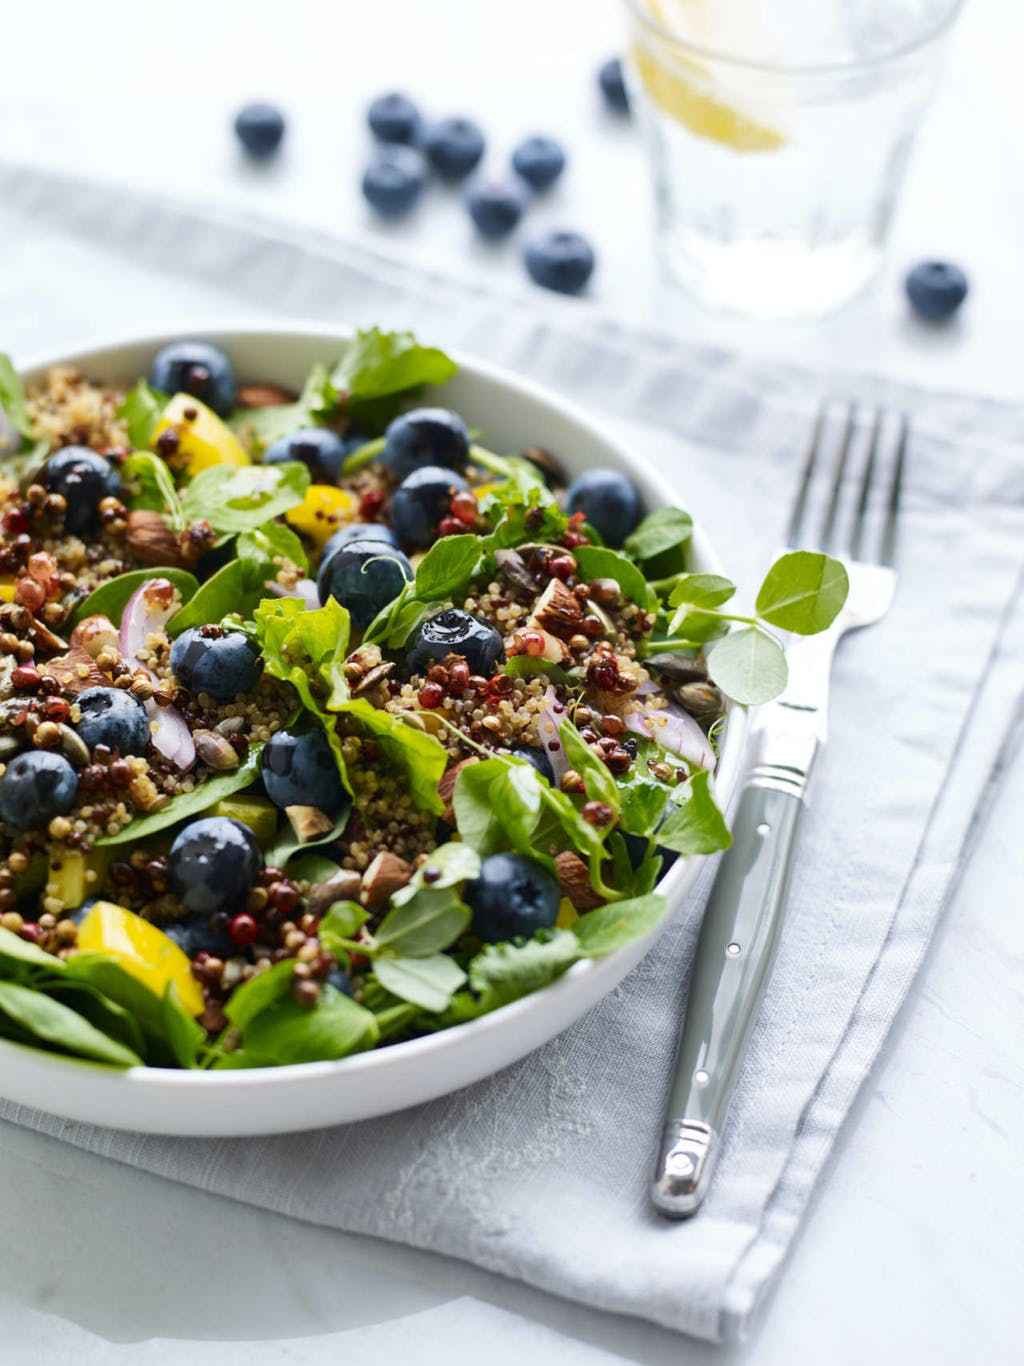 Berry World Blueberry and Quinoa Salad 180531 144416 75it373z4